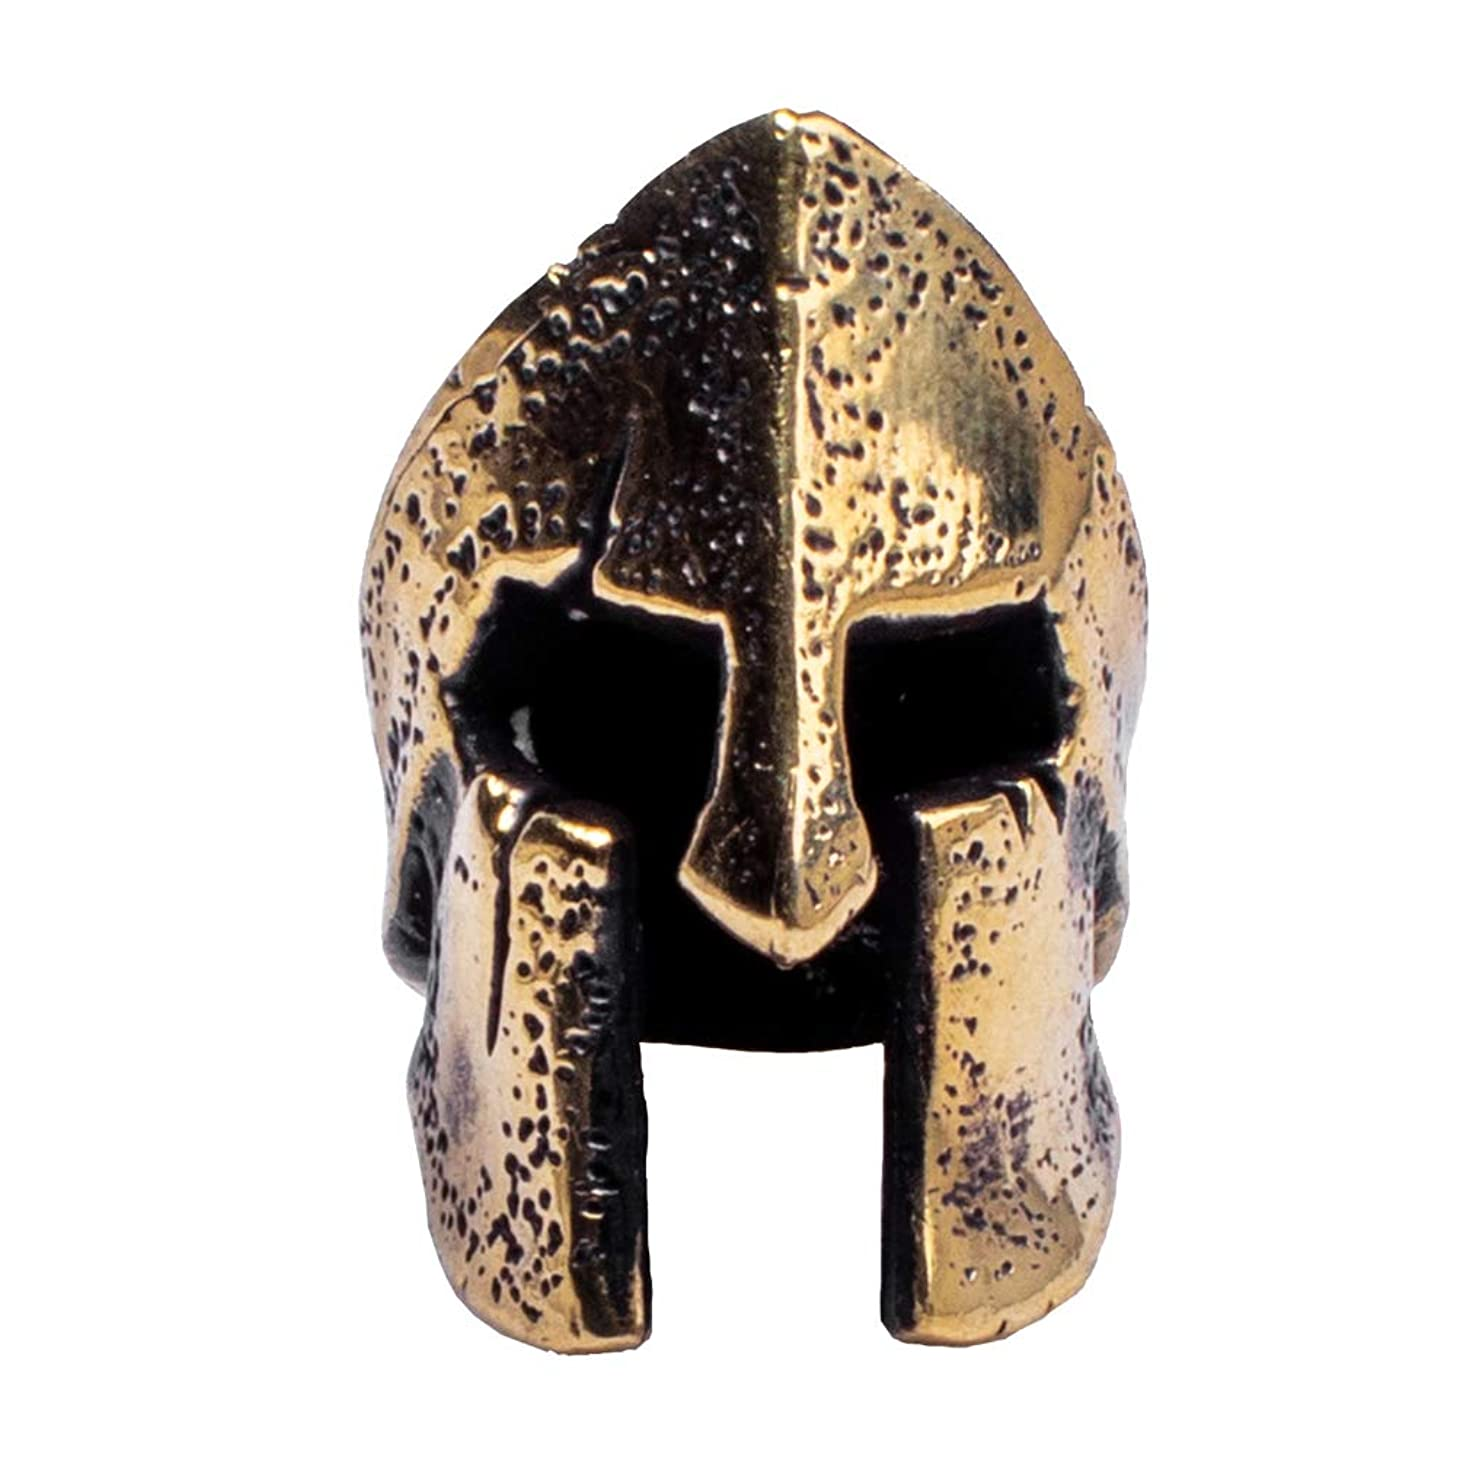 Metalfable Corinthian Helmet Paracord Bead Hand-Casted, Brass Charms EDC Accessories for Pendant Buckle,Keychain Pendant,Knife Lanyard,Zipper Pull